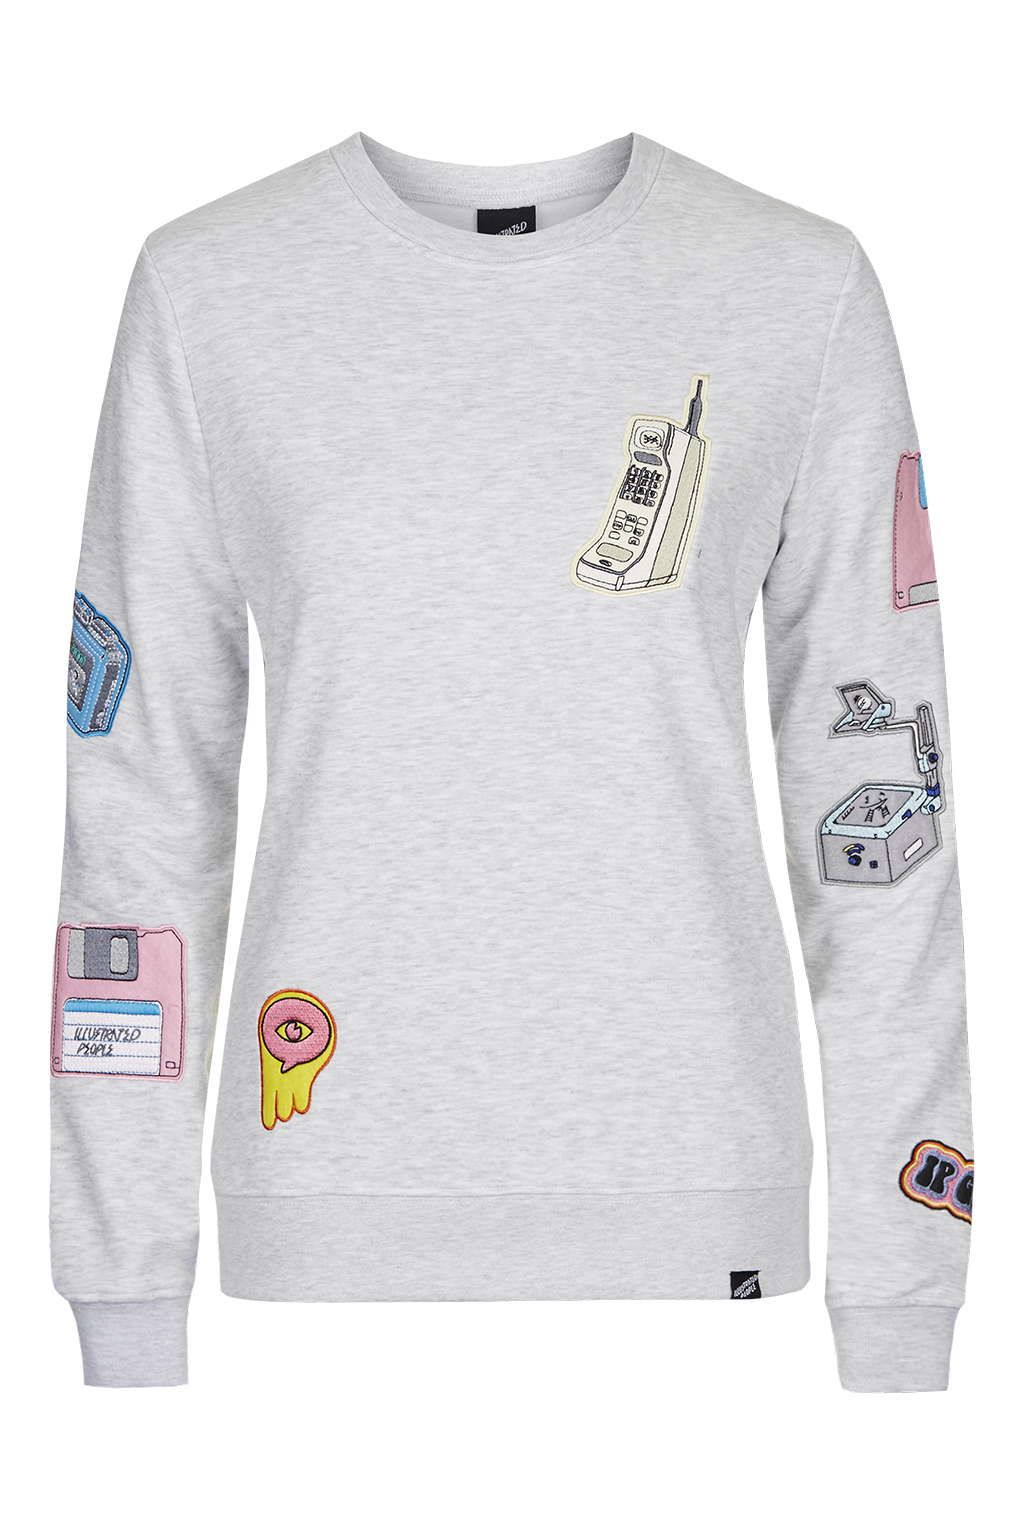 b29b41472 **Techno Embroidered Jumper by Illustrated People - Tops - Clothing -  Topshop